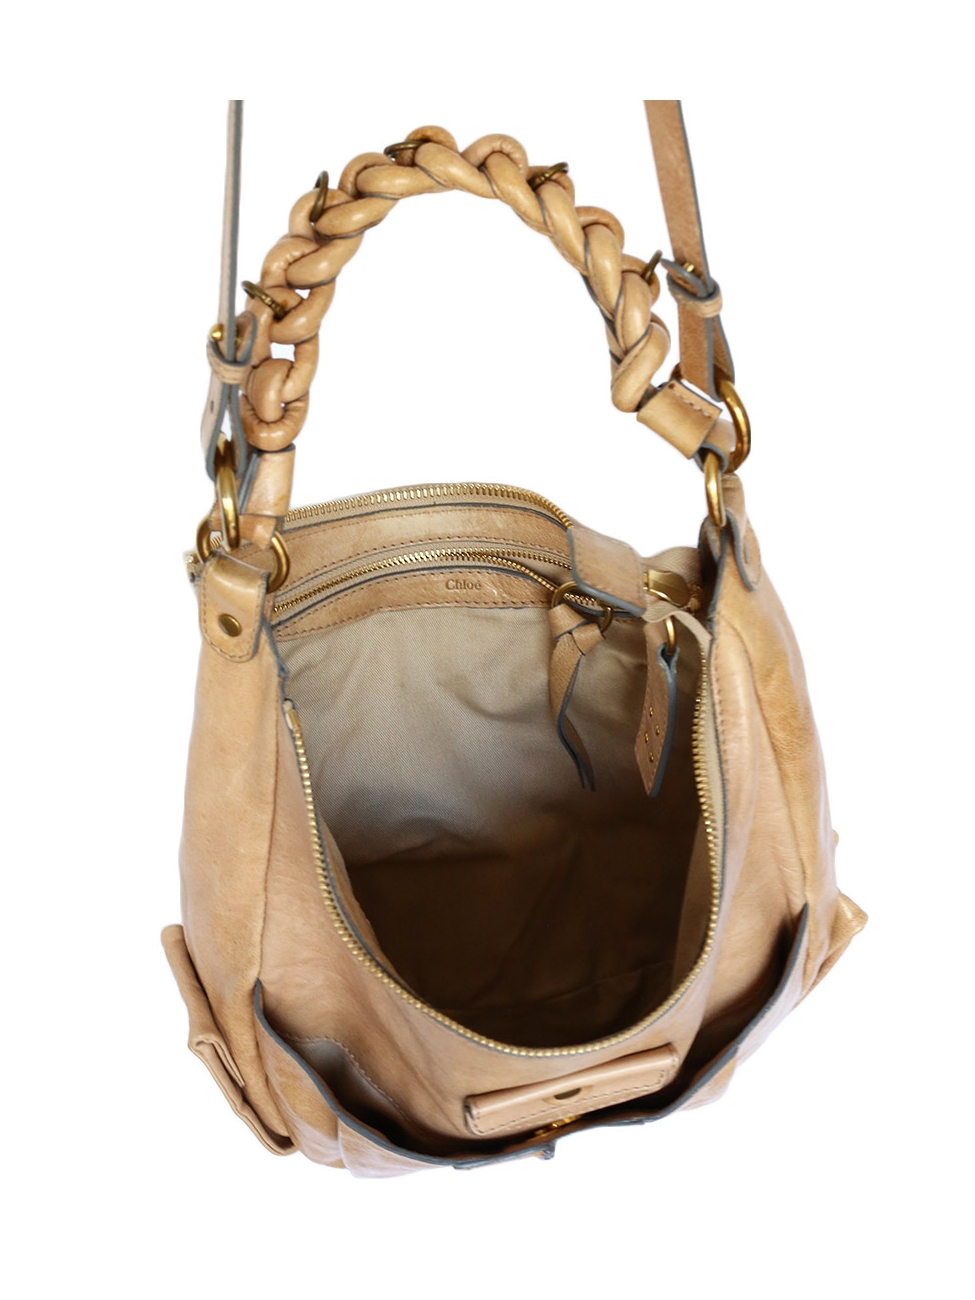 Louise Paris - CHLOE HELOISE Small hobo crossbody bag in champagne beige  leather Retail price €890 4567c87aa4c06